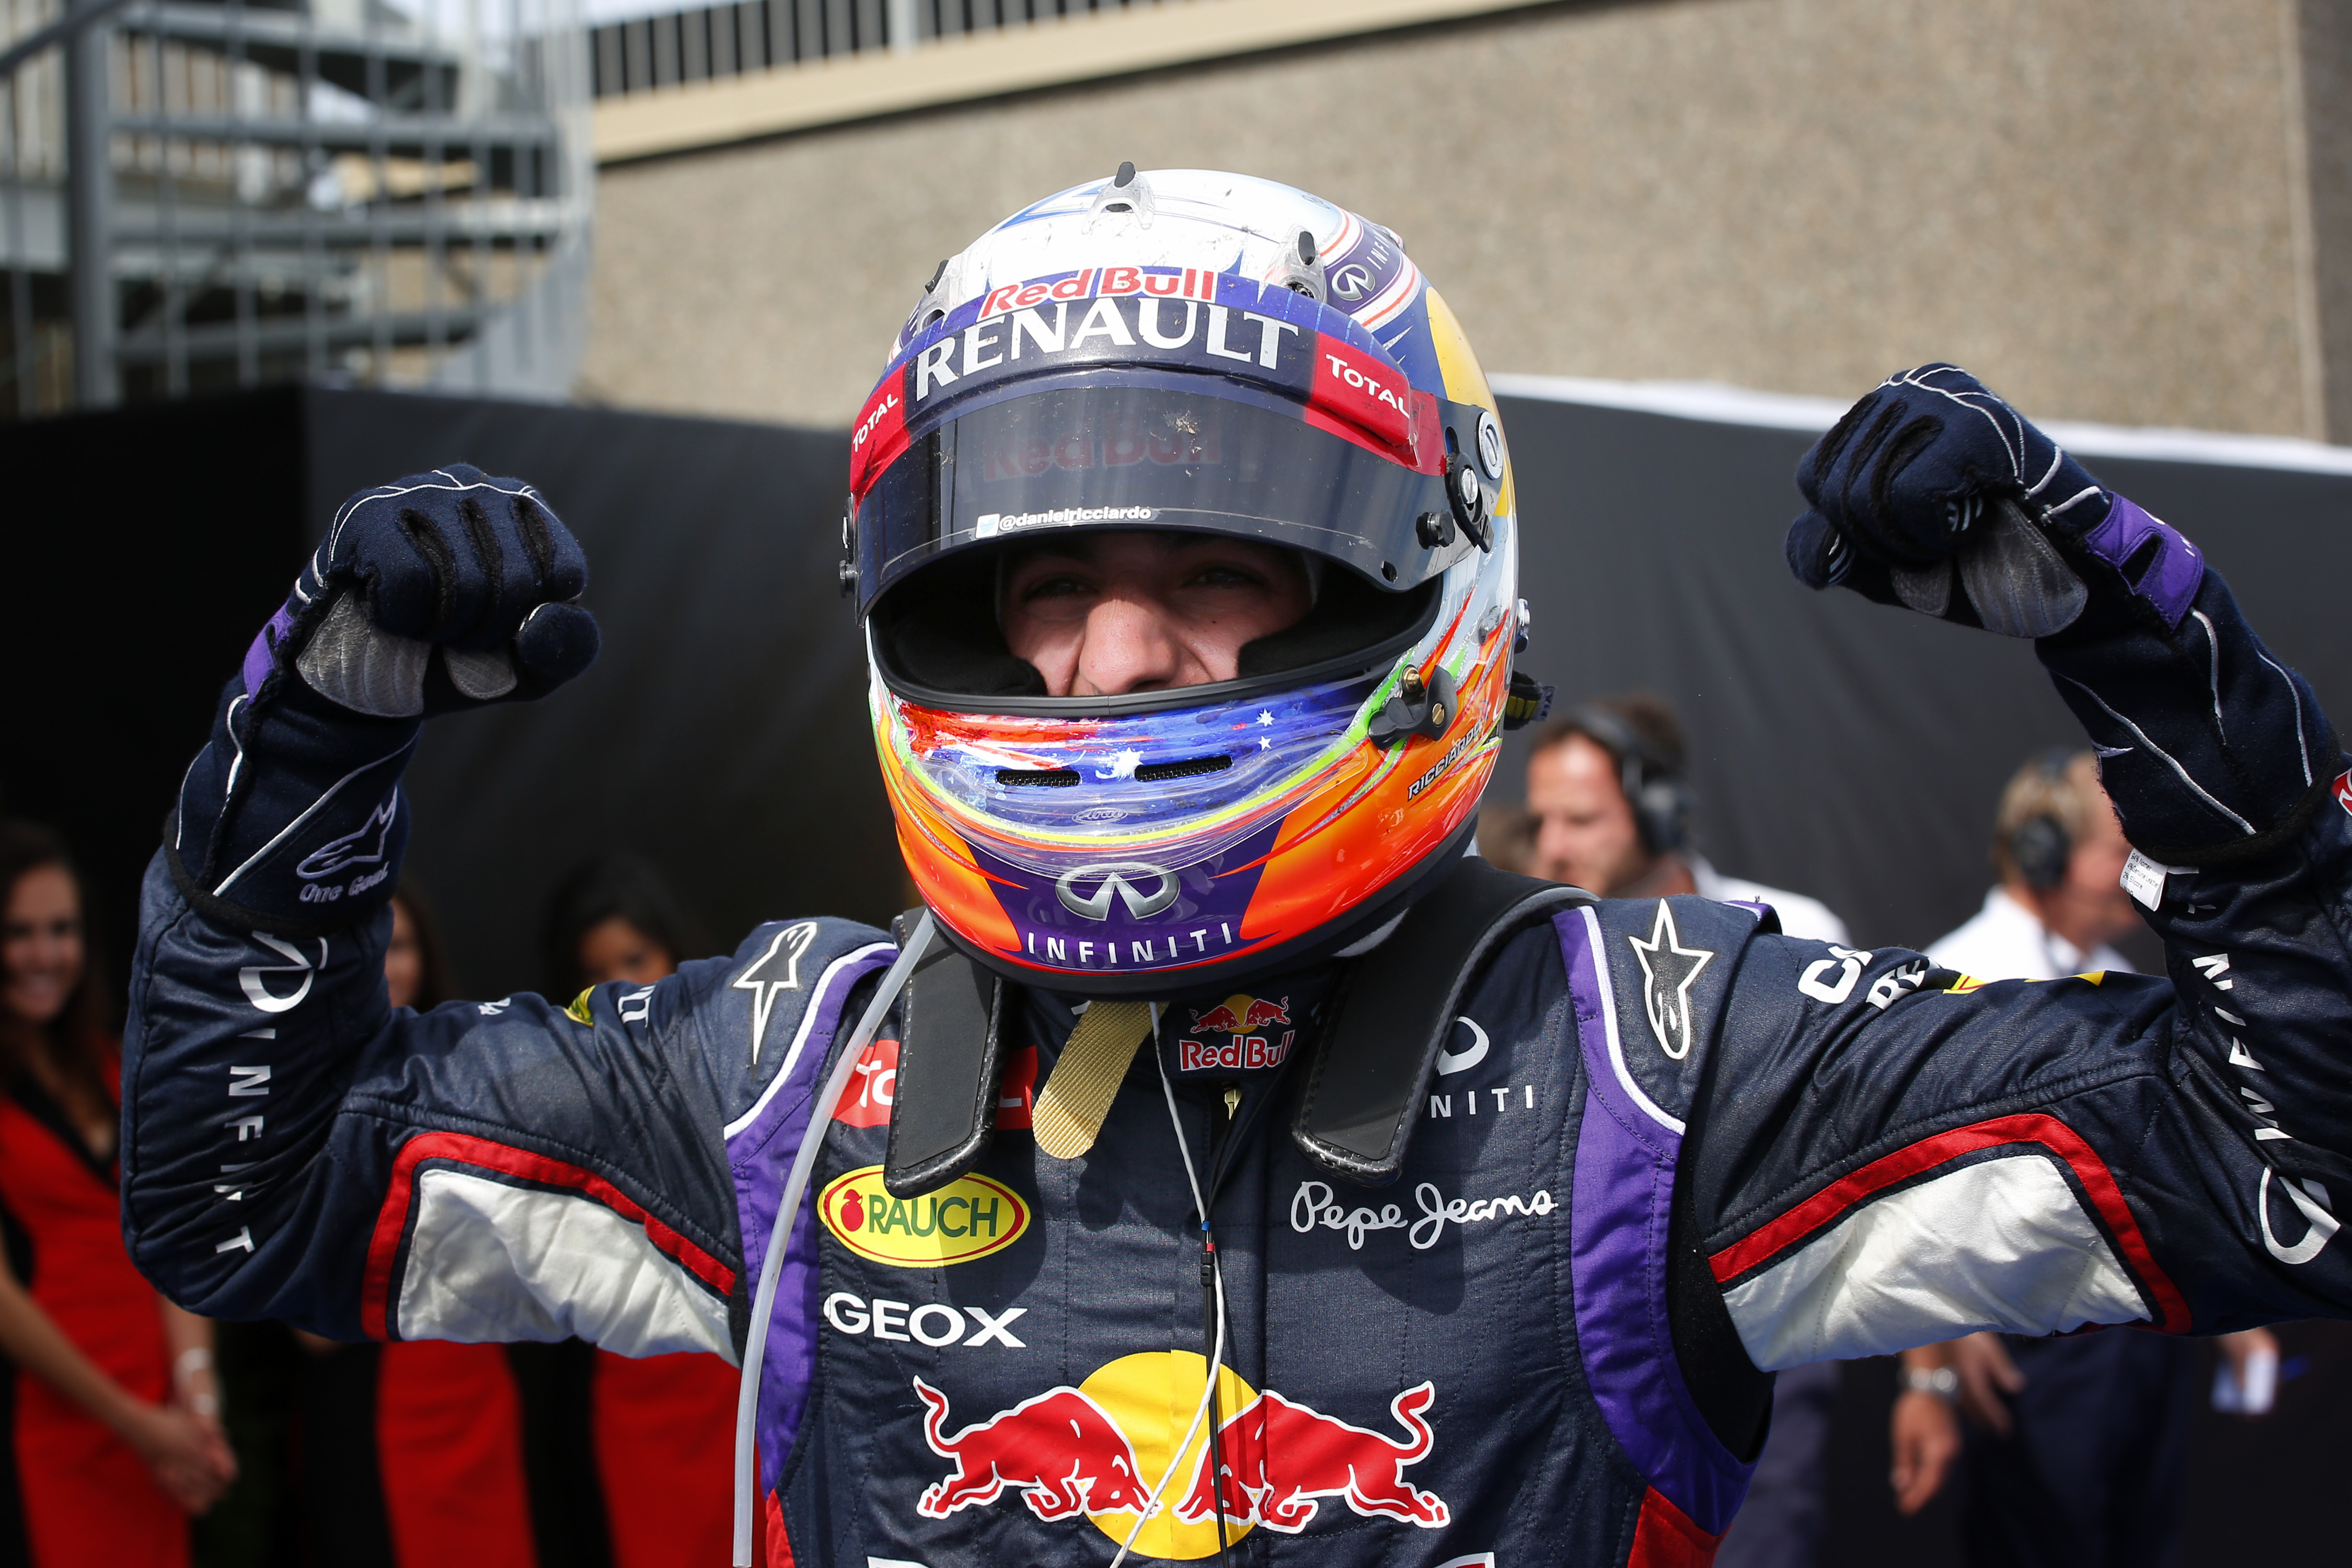 RICCIARDO Daniel (Aus) Red Bull Renault Rb10 ambiance portrait podium ambiance  during the 2014 Formula One World Championship, Grand Prix of Canada from June 5 to 8th, 2014 in Montreal, Canada. Photo Frederic Le Floc'h / DPPI